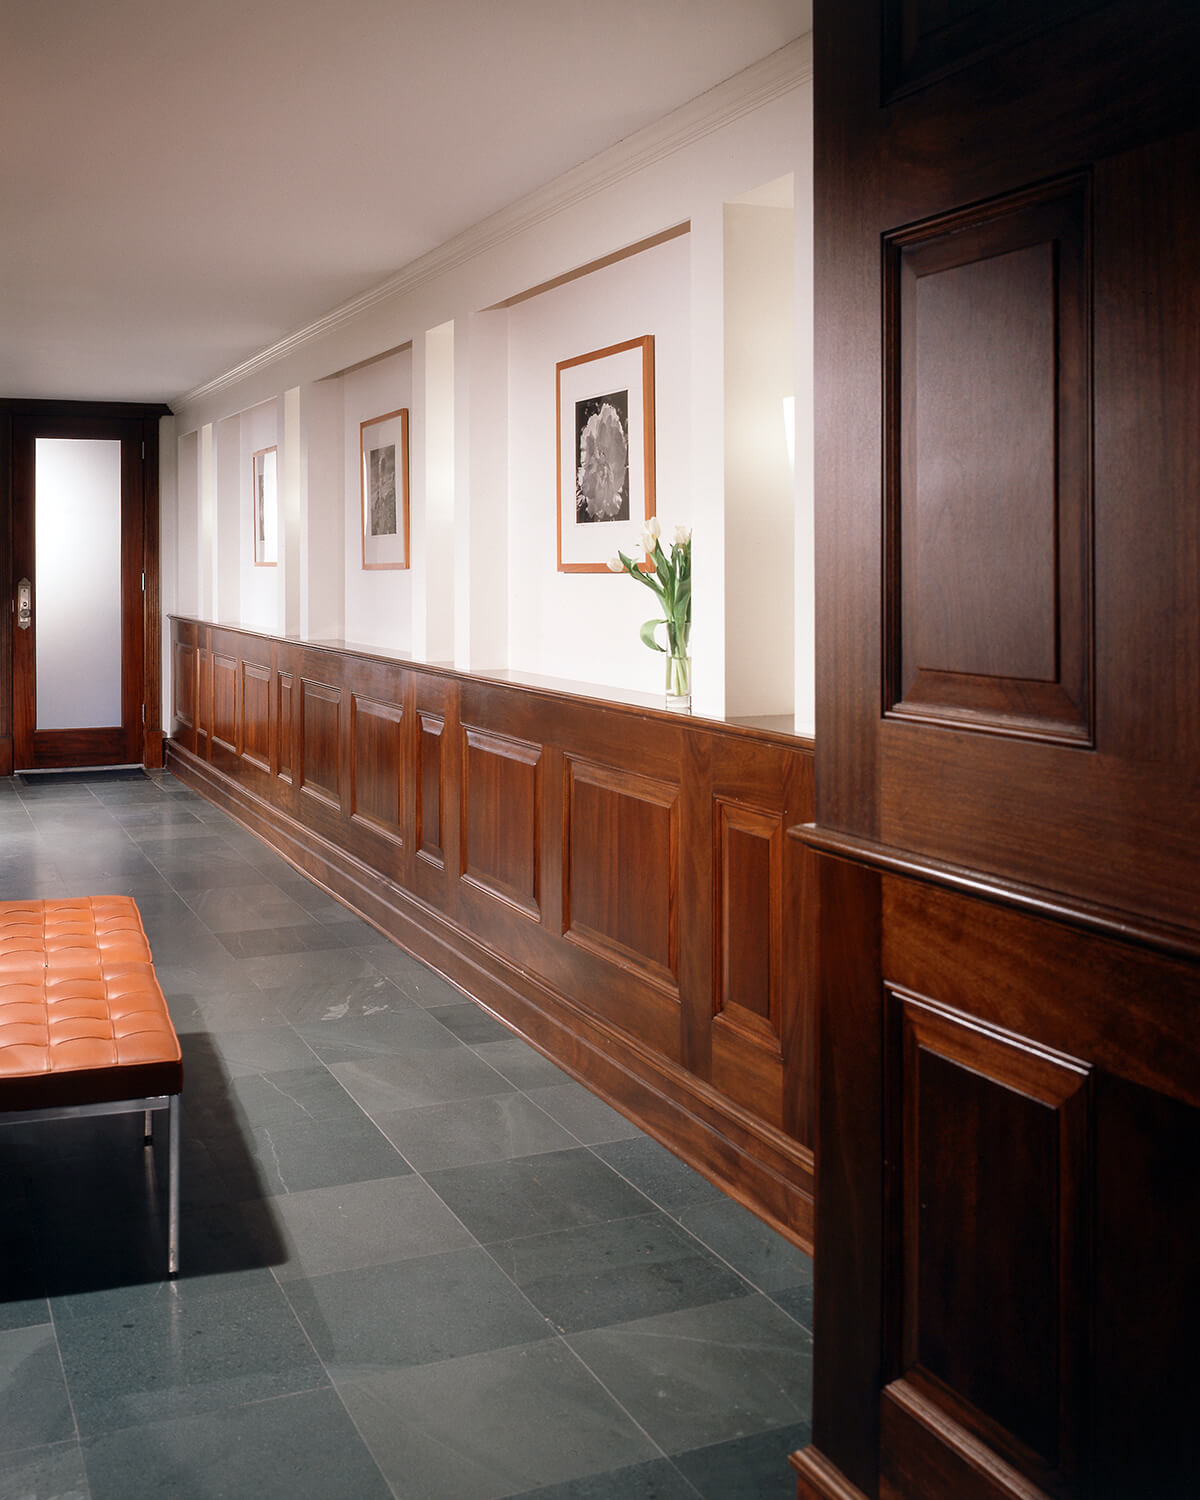 Paneled wainscot, etched glass doors, and slate tile floors in a grand limestone row house.